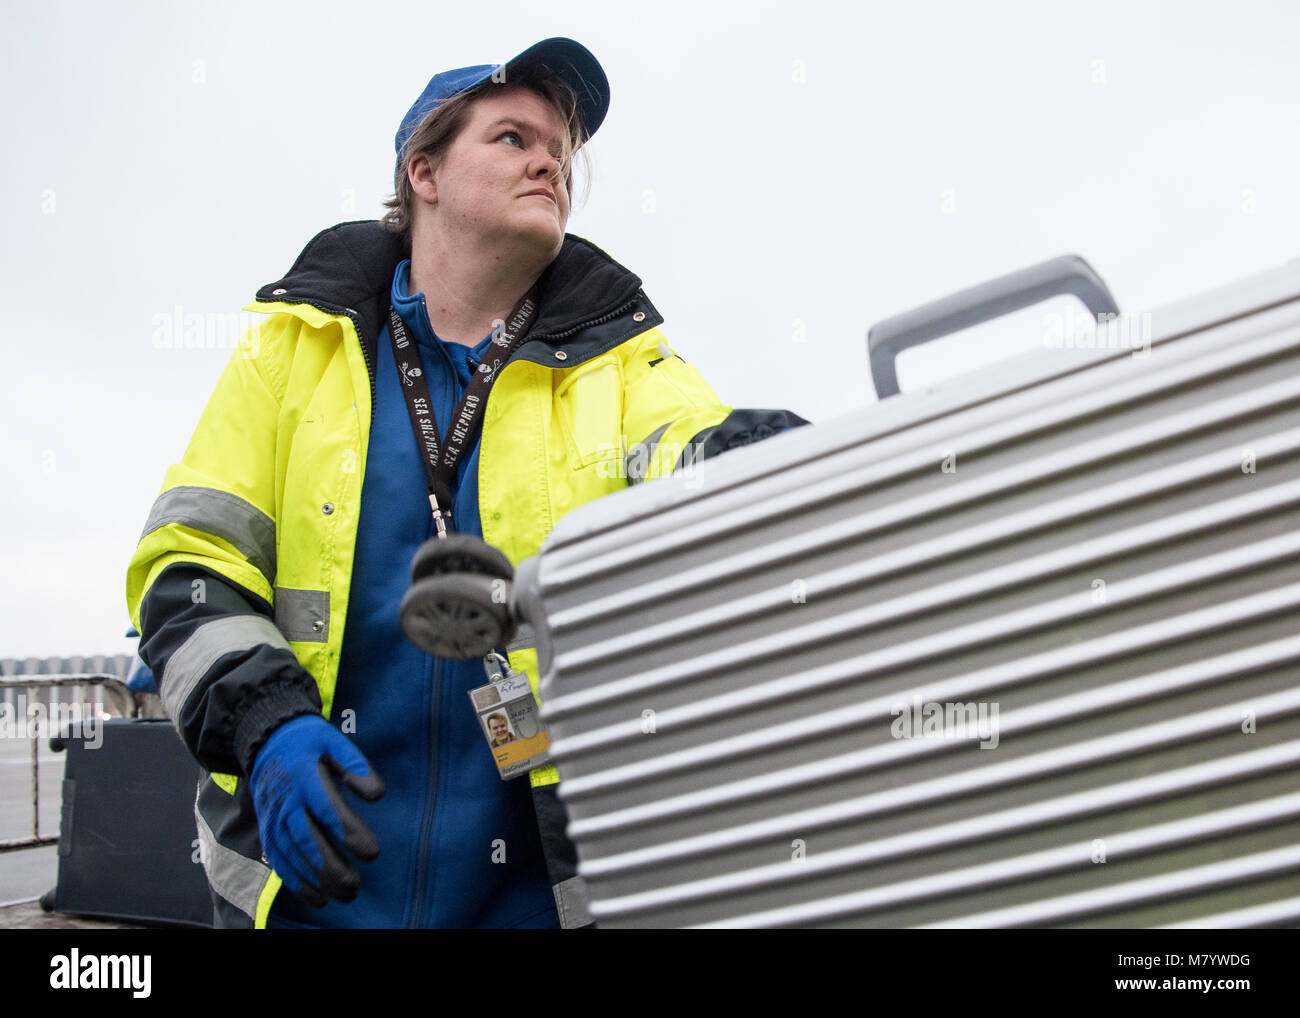 08 March 2018, Germany, Frankfurt: Sabrina Boock, in charge of ground handling operations, loads a suitcase into Stock Photo